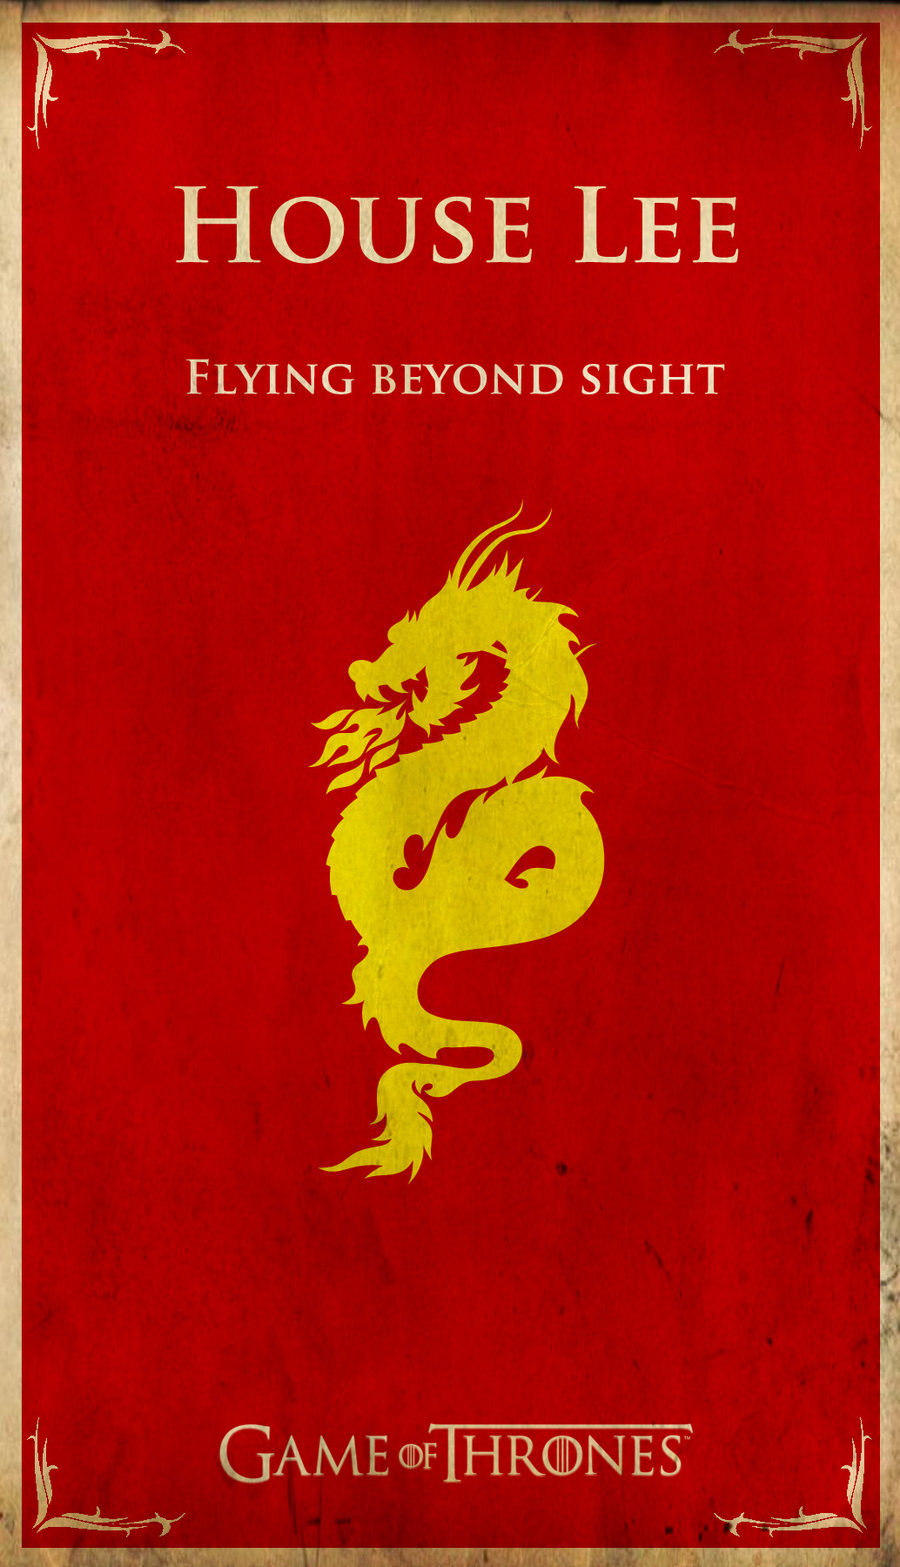 Awesome Geek Culture Game Of Thrones Inspired Banners Geektyrant